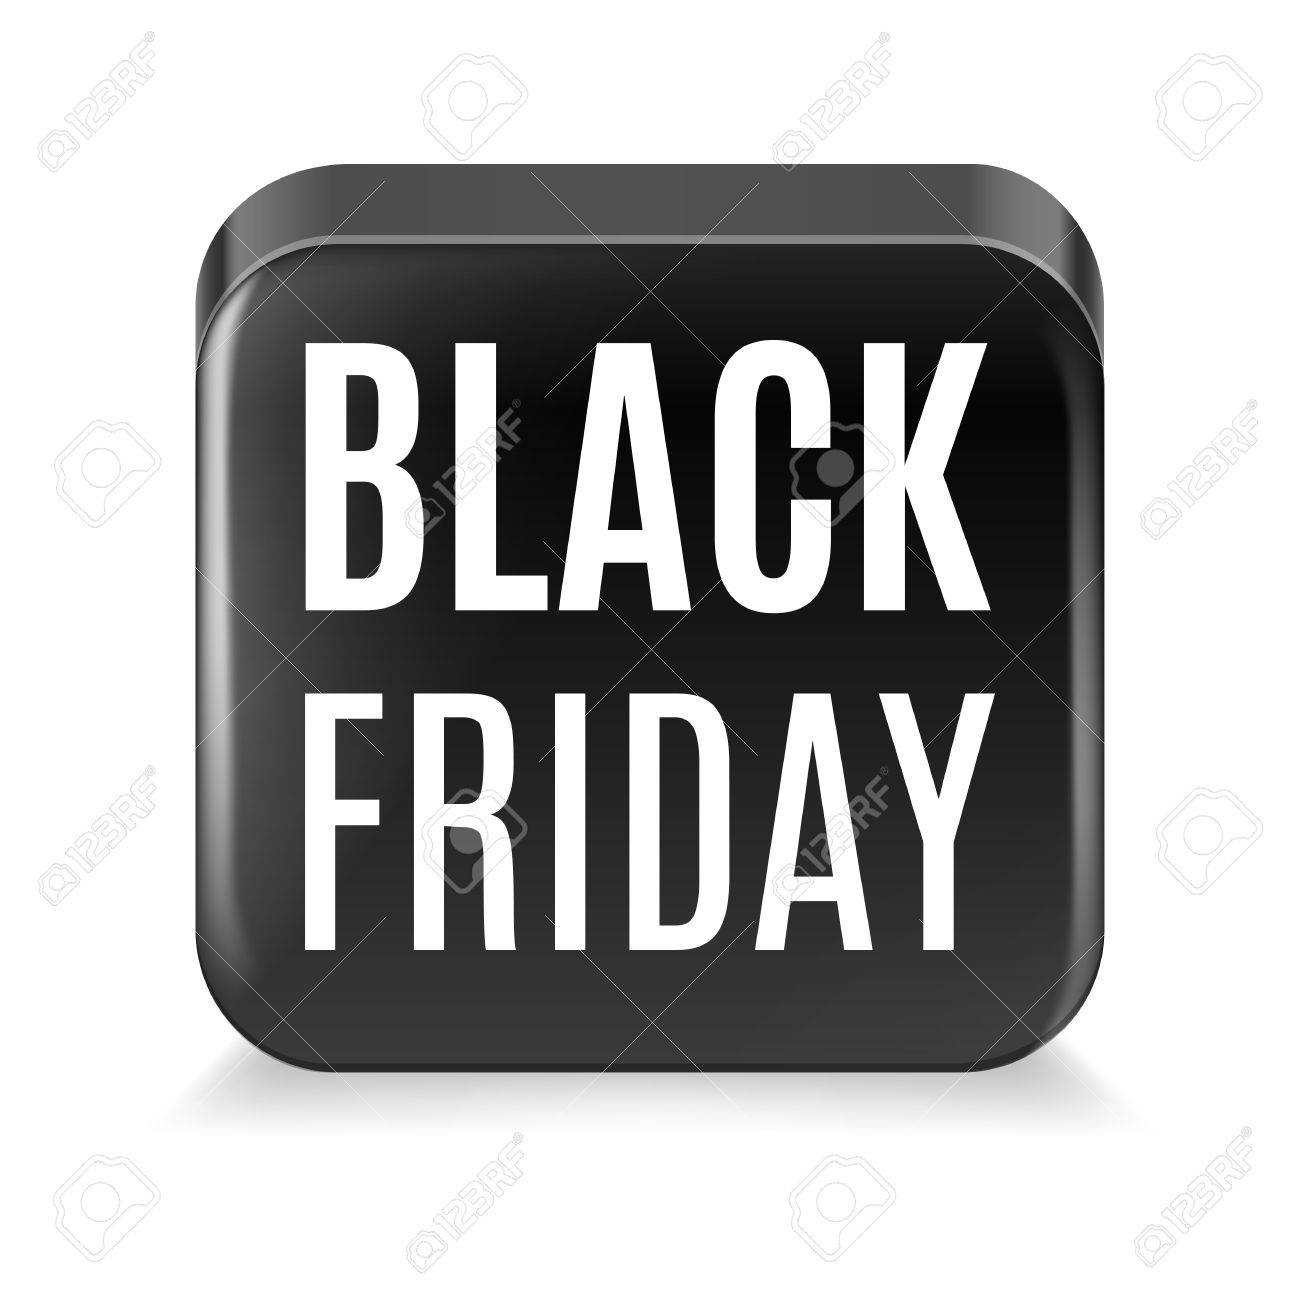 Black Friday Rabatte Black Label Black Friday Discounts Increasing Consumer Growth